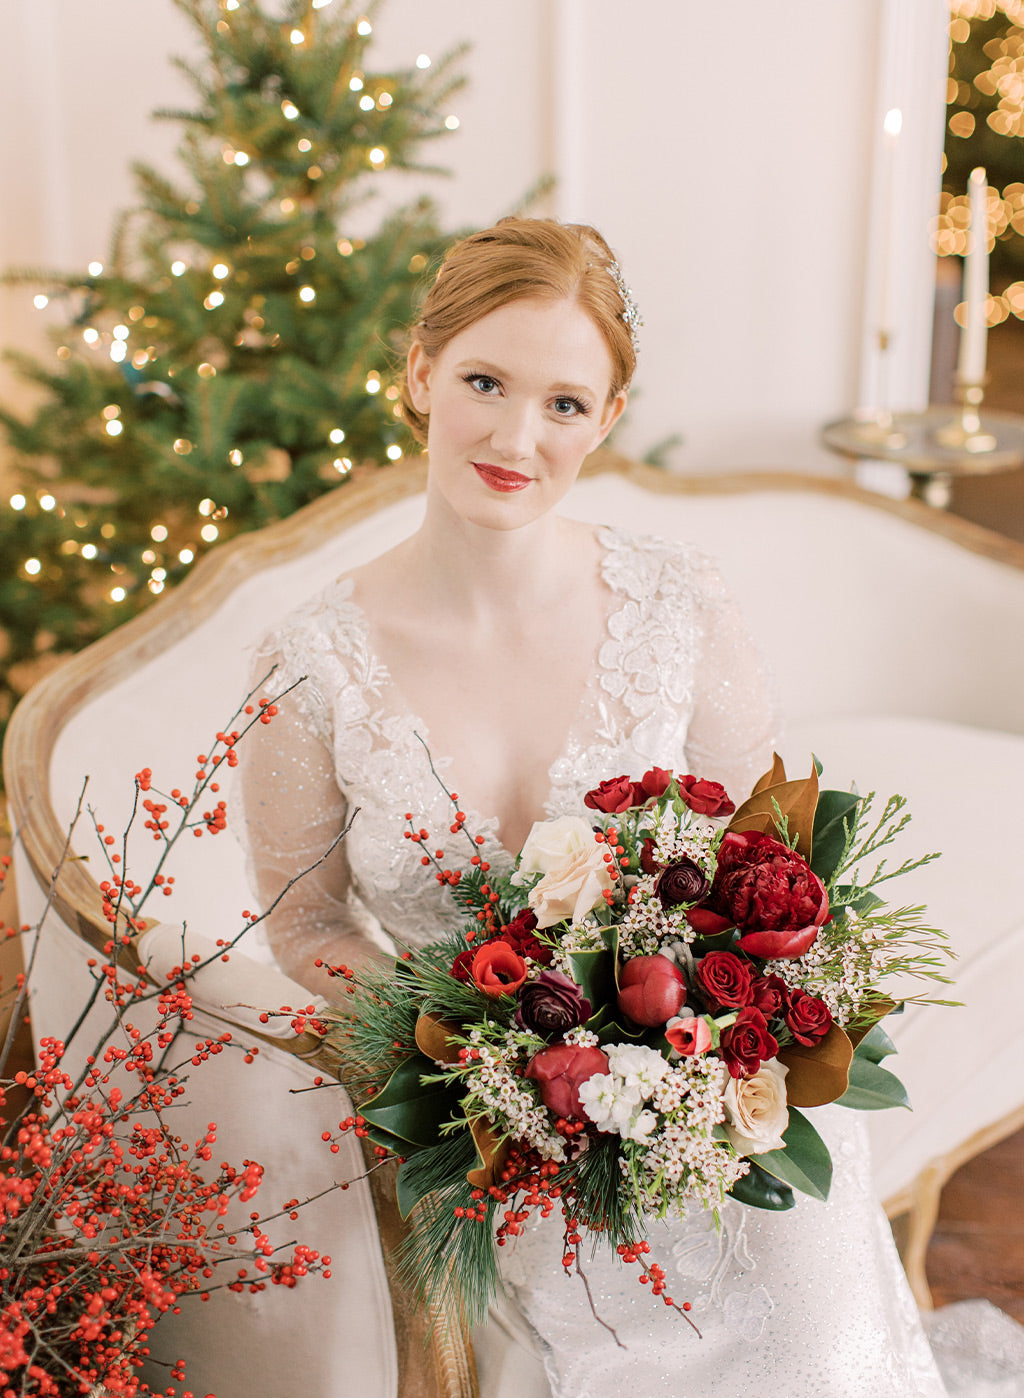 Bride with Red Roses wedding floral arrangment